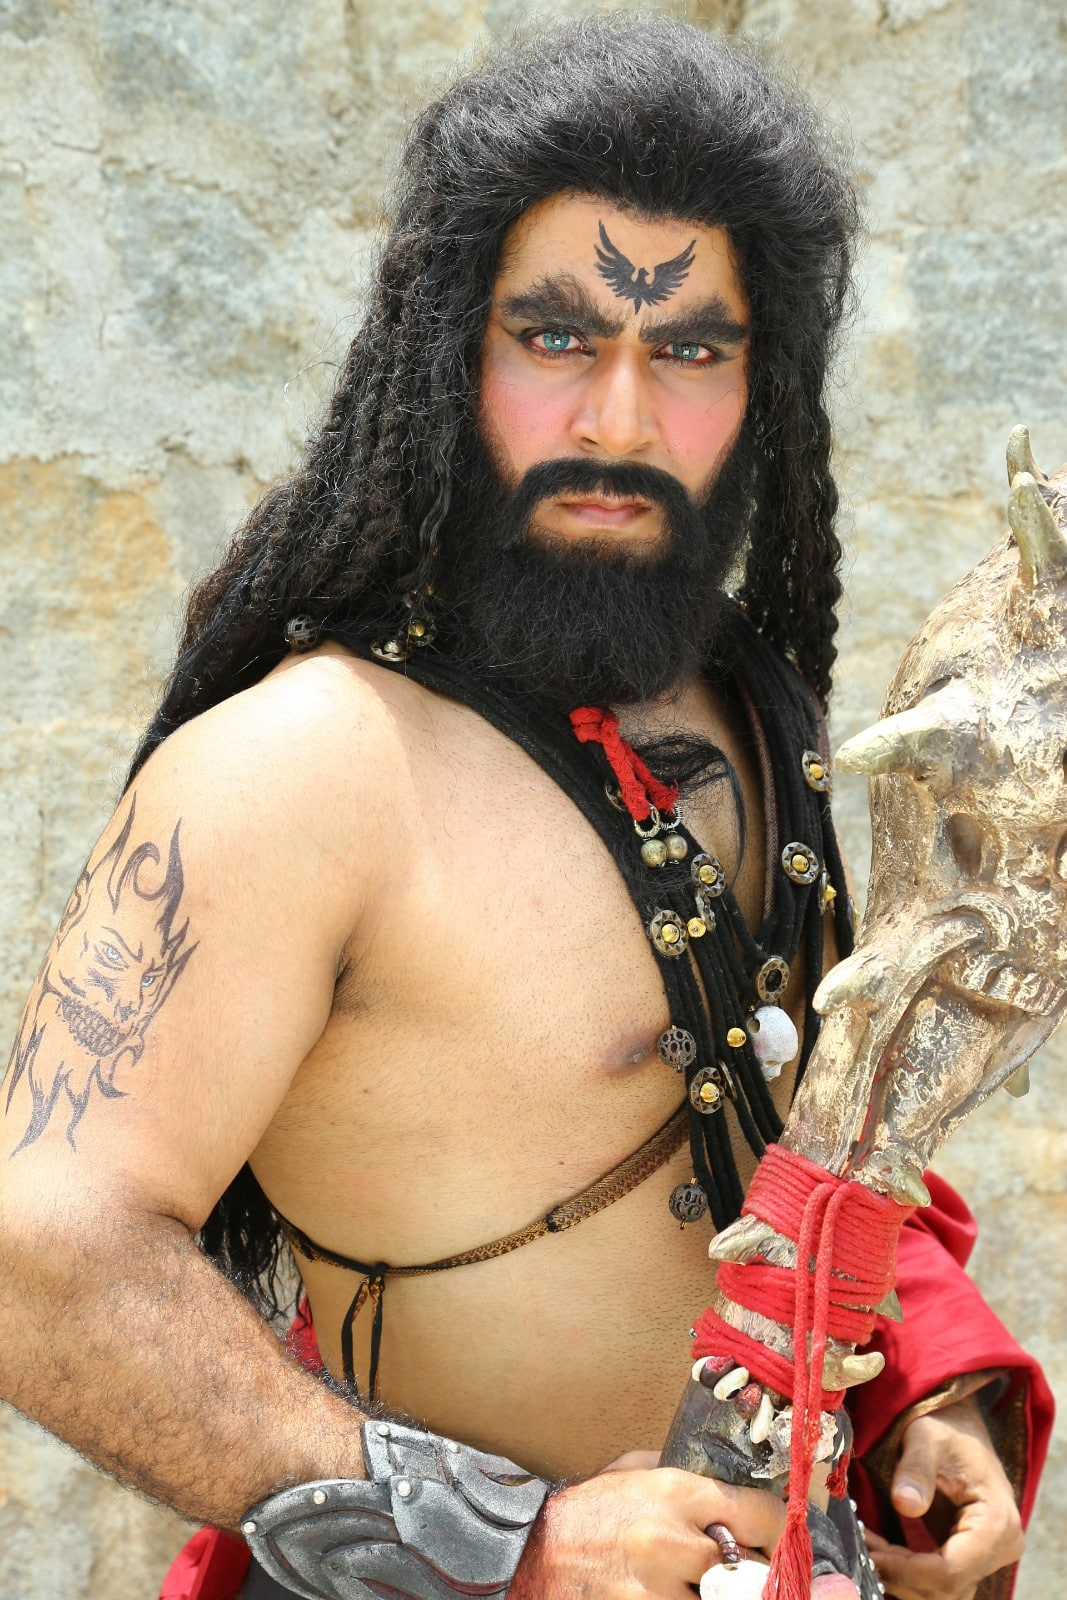 Meet Sundeep Hemnaoni - The Lead Villain In The New 14 Language Serial Titled Swarna Khadgam